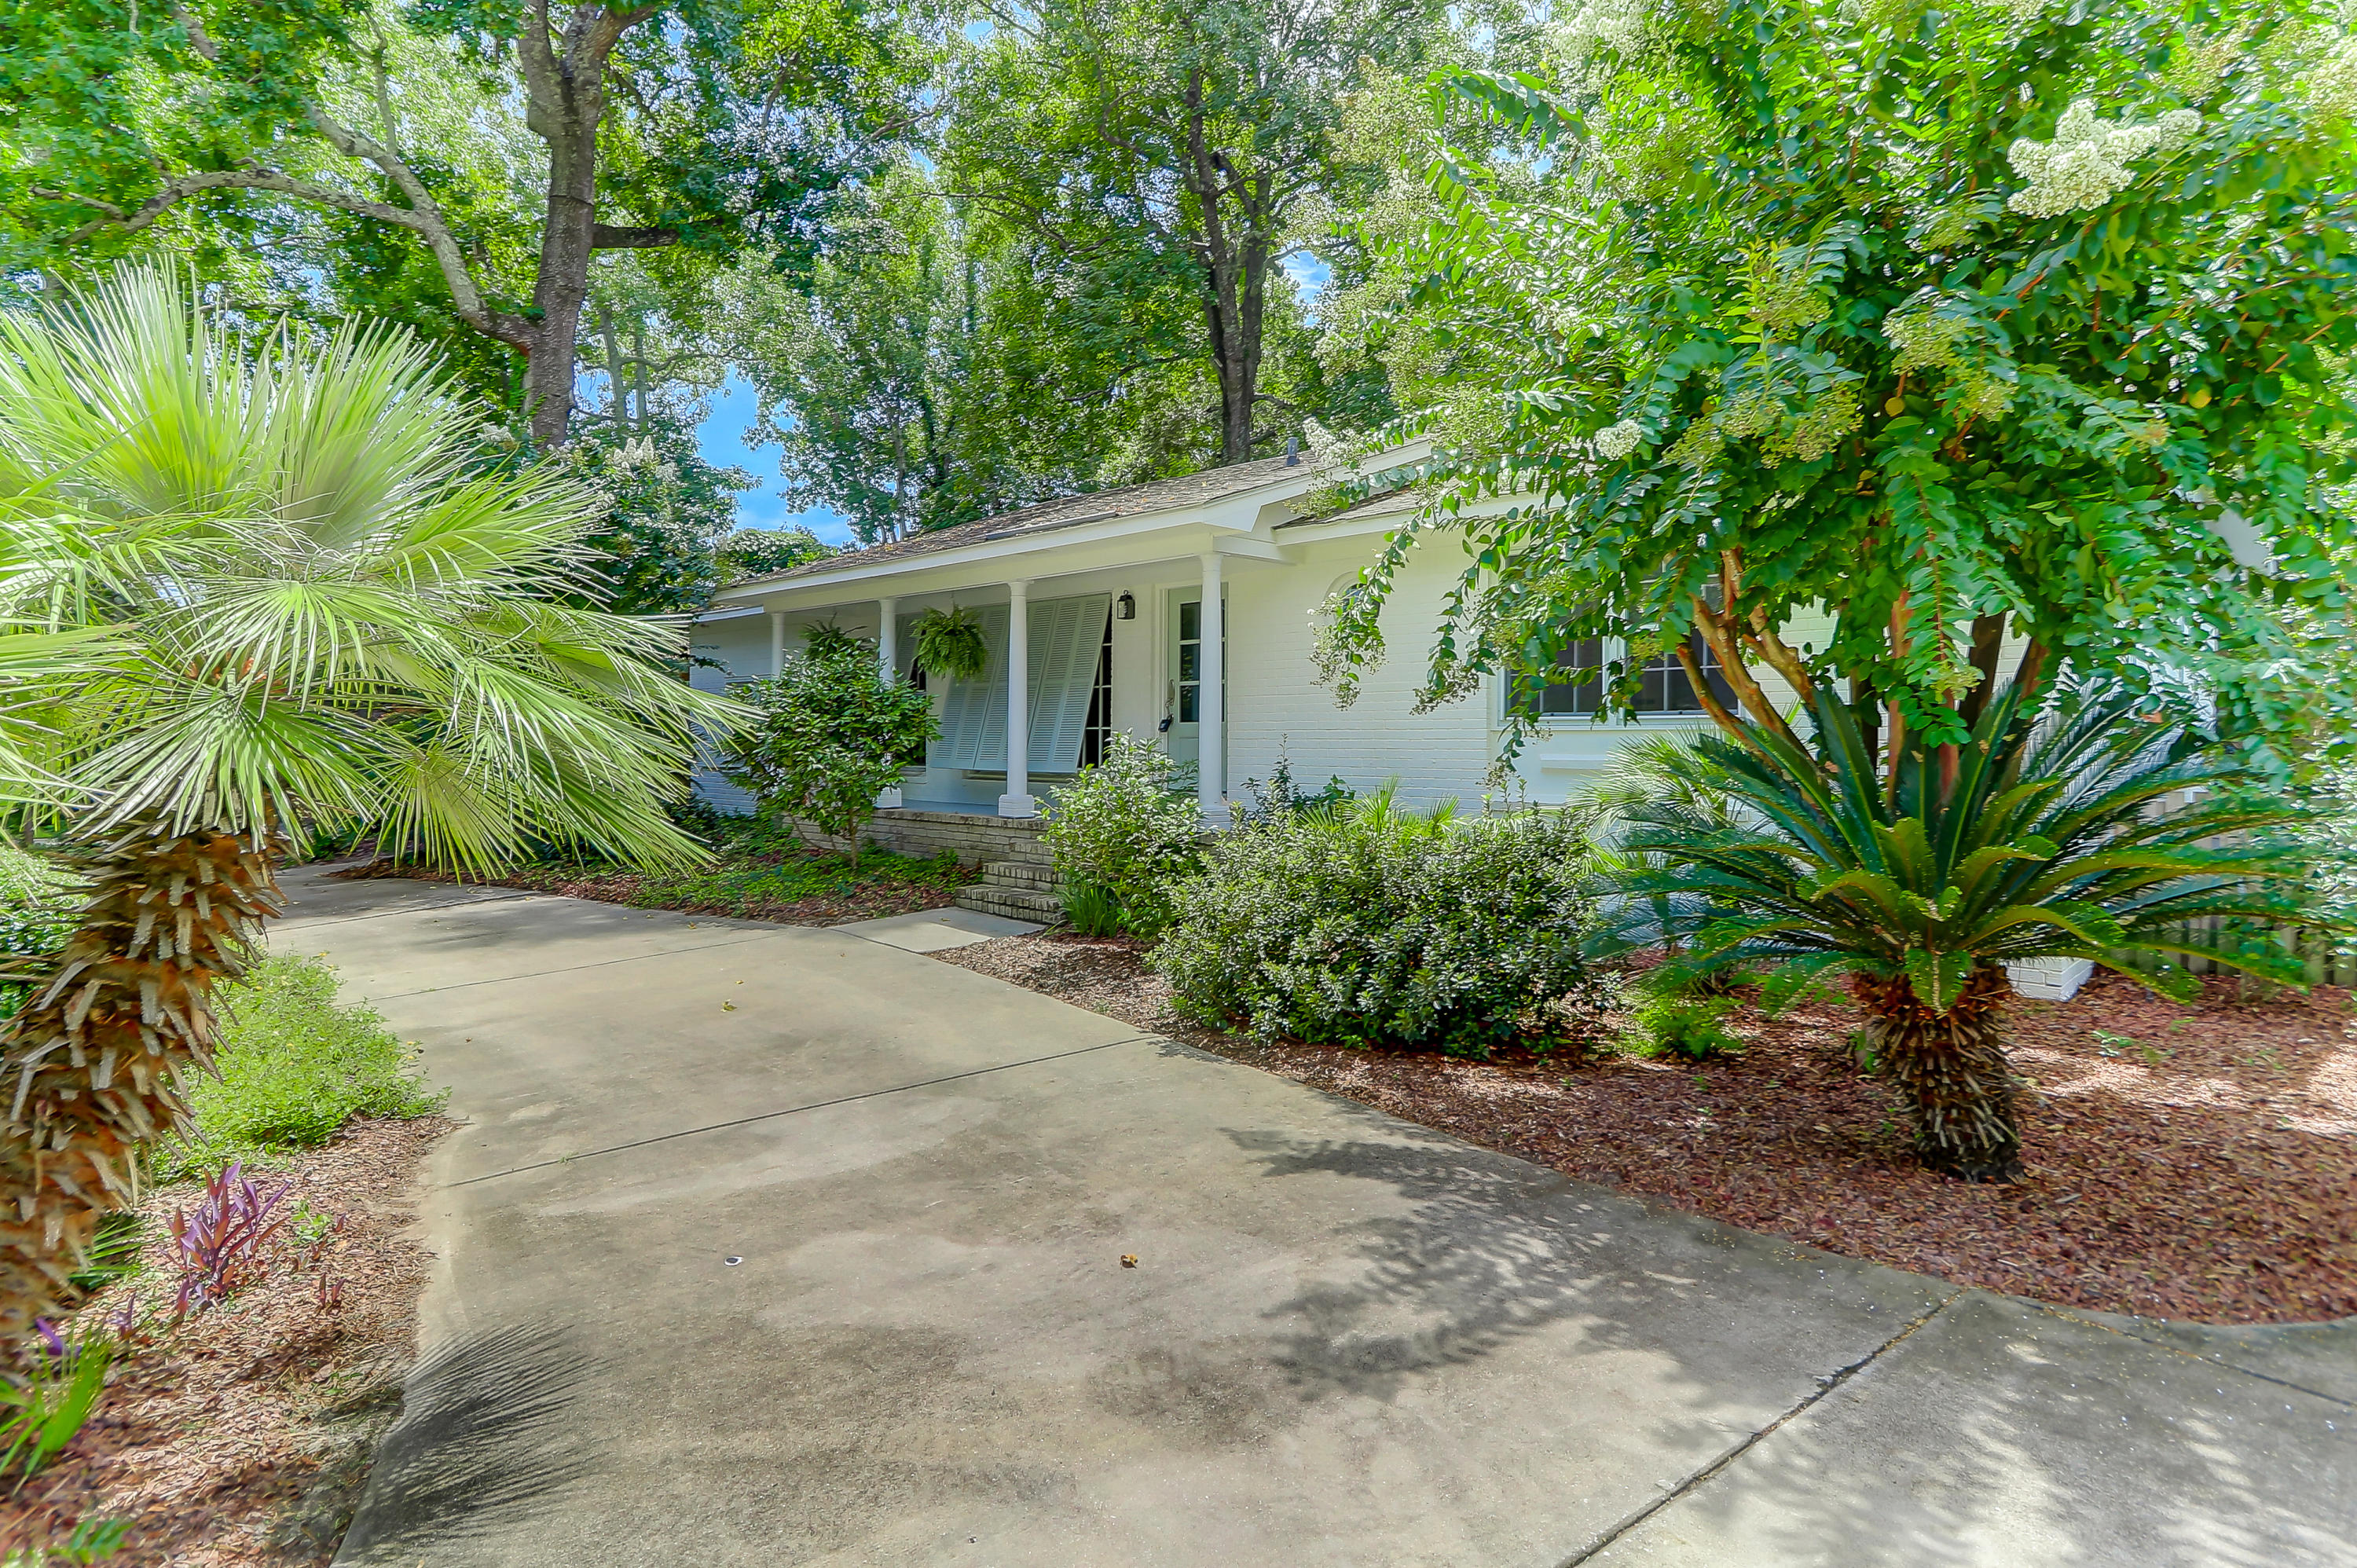 Old Mt Pleasant Homes For Sale - 1466 Glencoe, Mount Pleasant, SC - 33